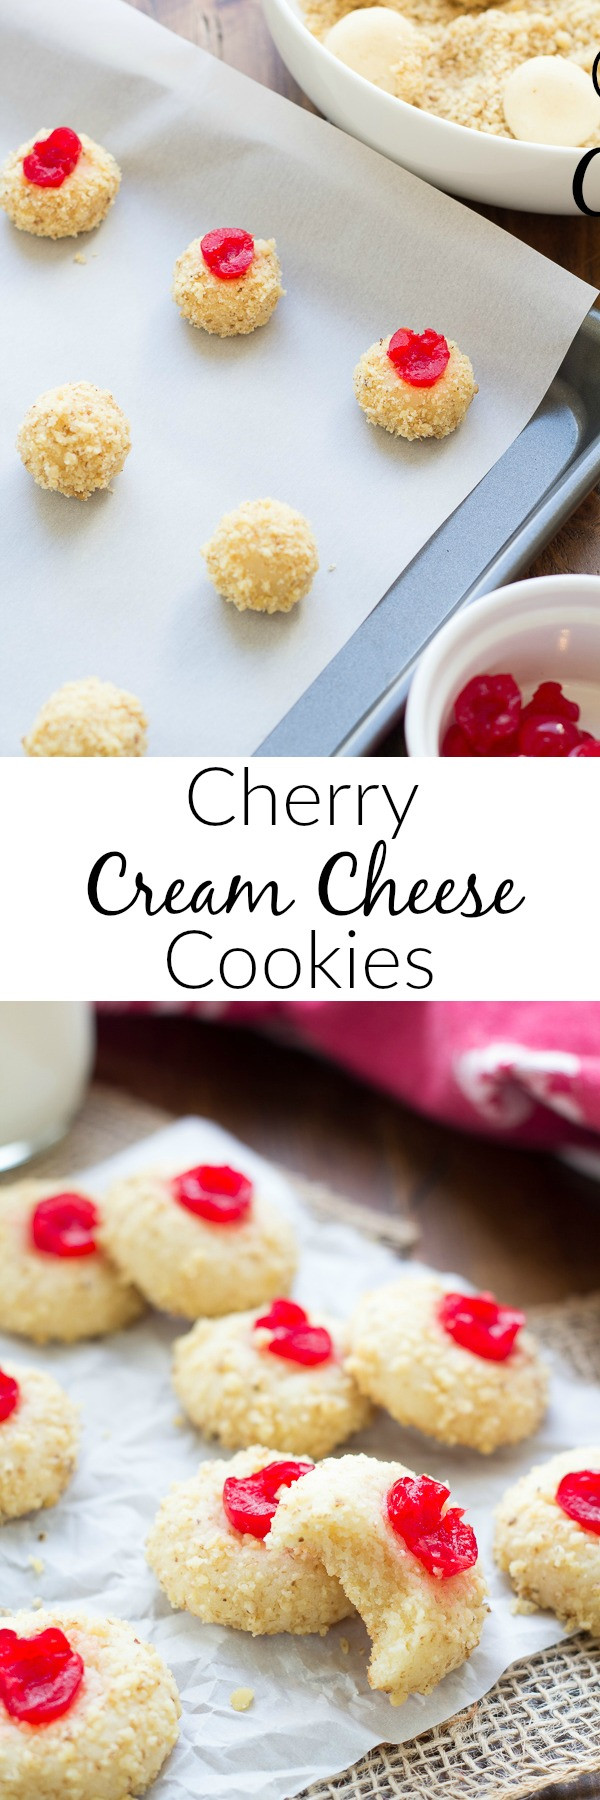 Cream Cheese Christmas Cookies  Cherry Cream Cheese Cookies Kristine s Kitchen